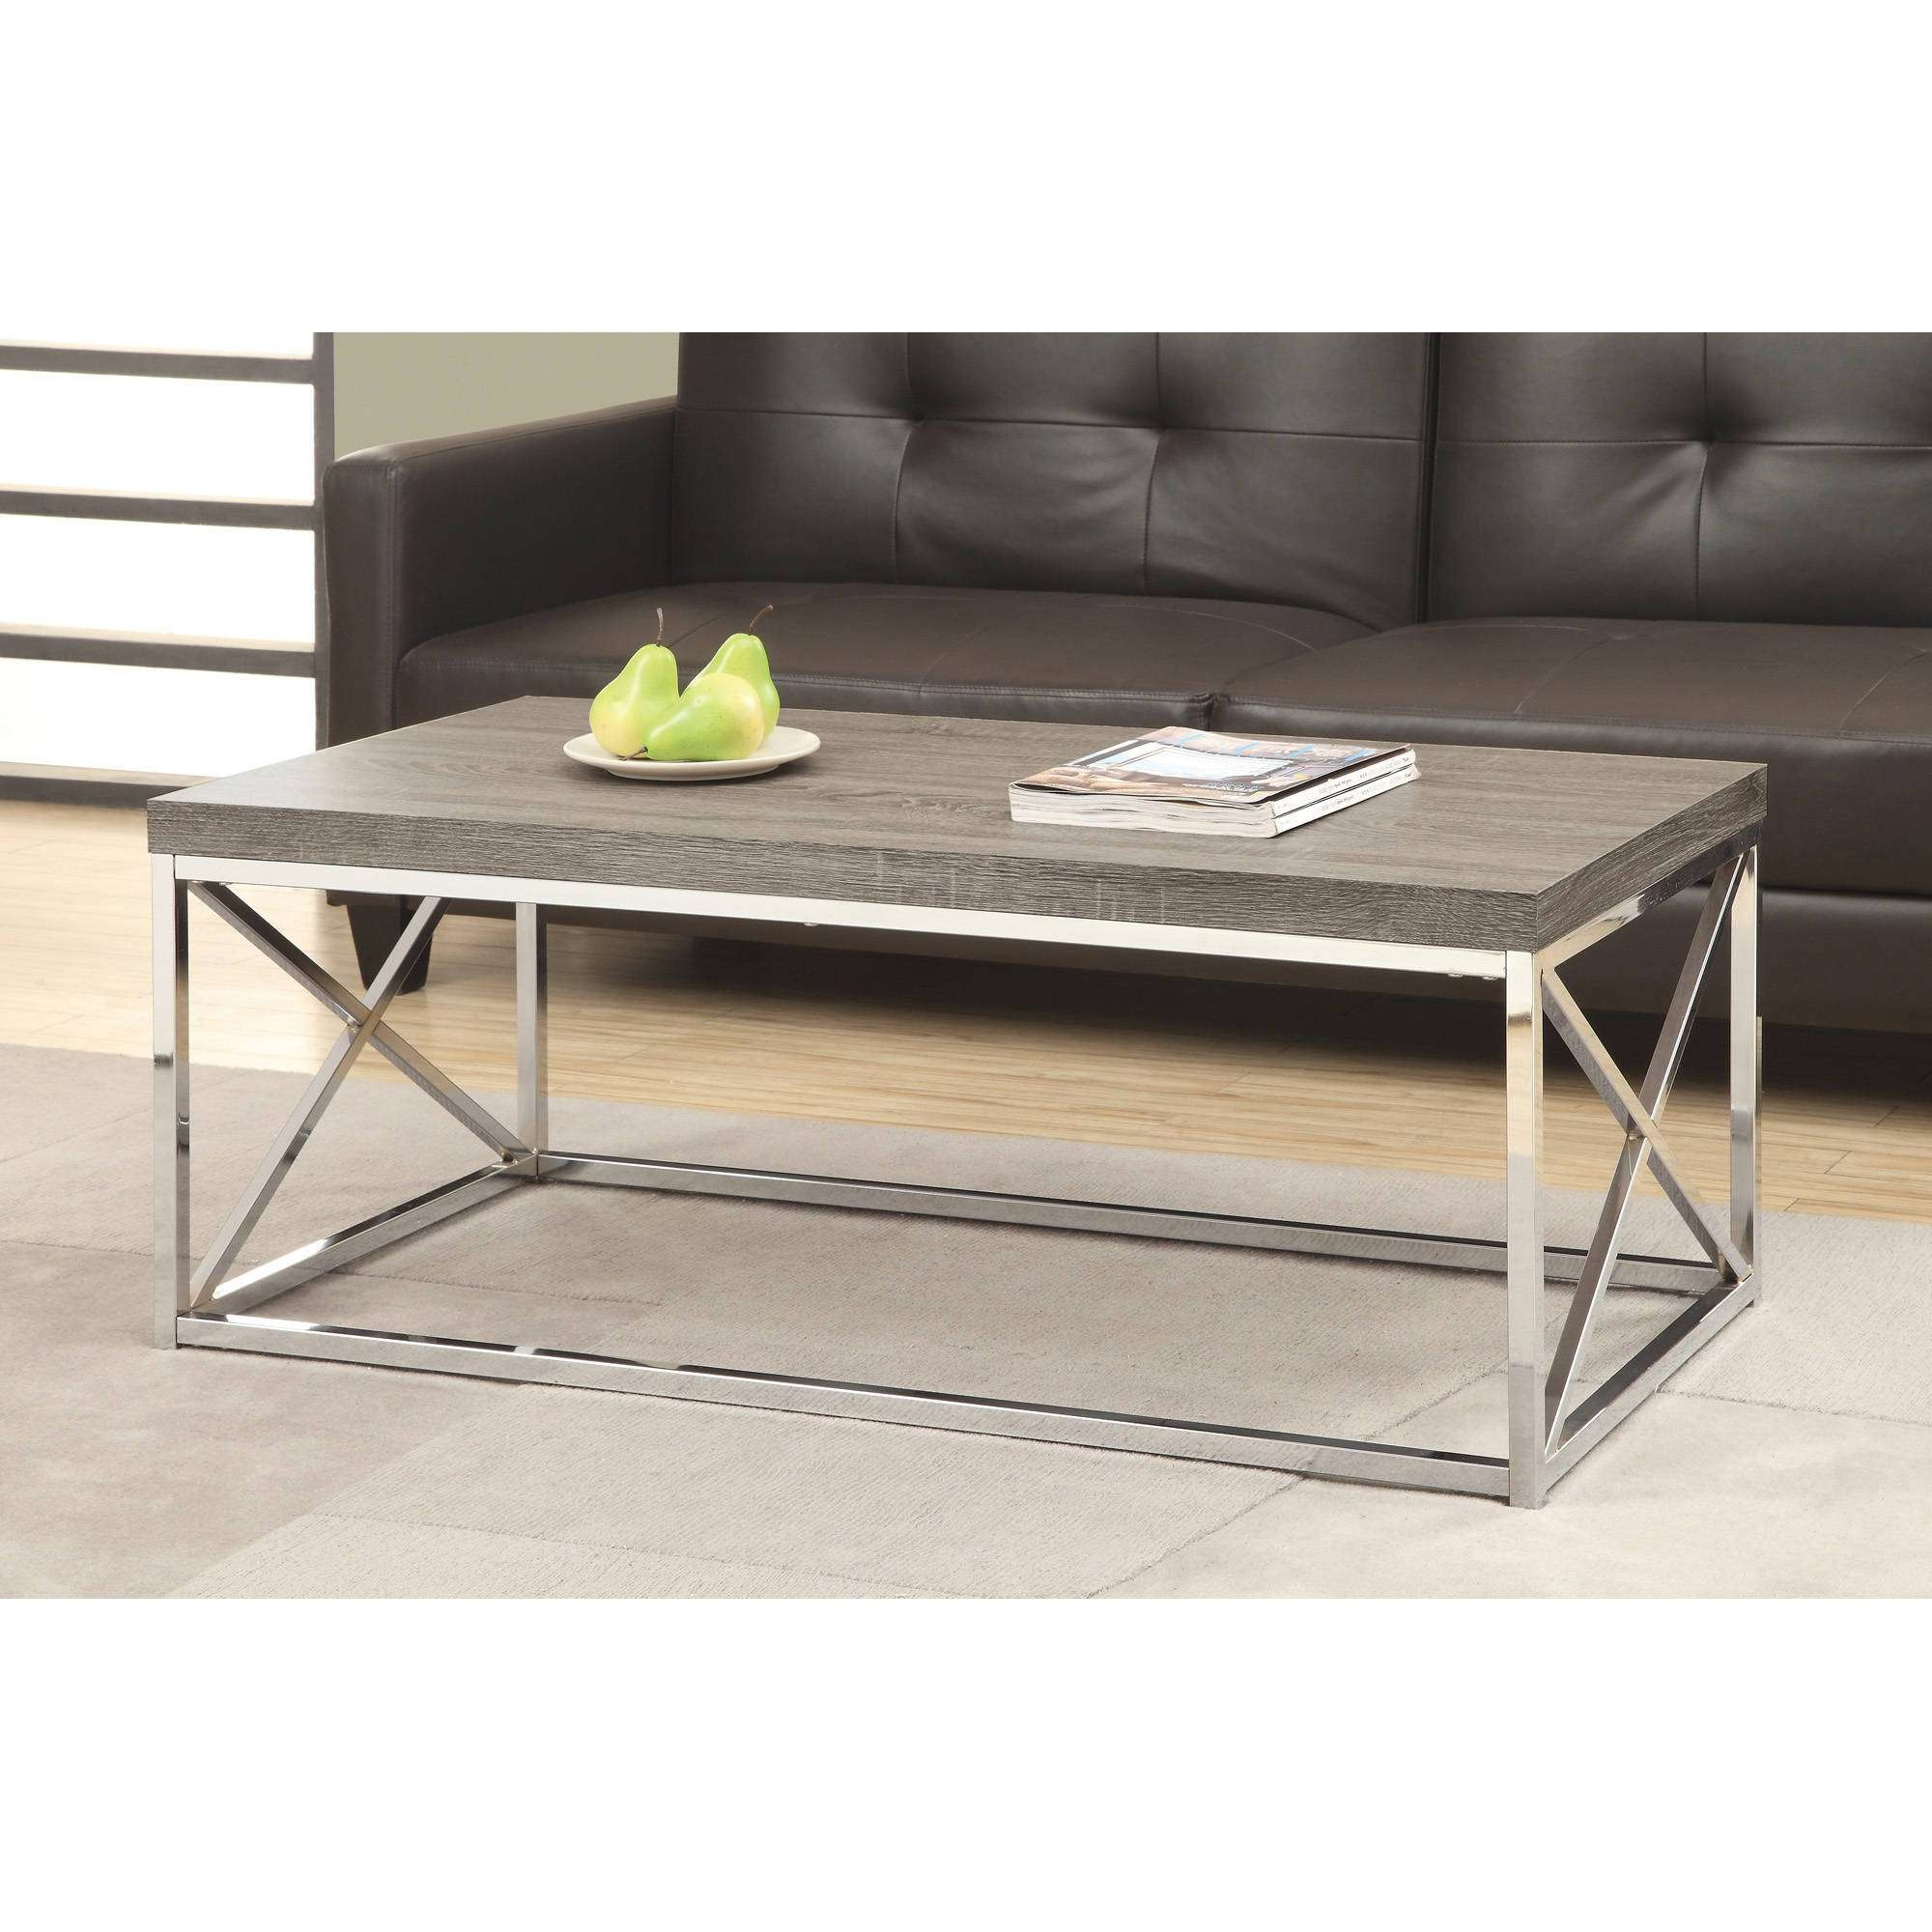 Popular Chrome Leg Coffee Tables Throughout Wood Coffee Table With Metal Legs Tags : Wonderful Black Metal (View 17 of 20)